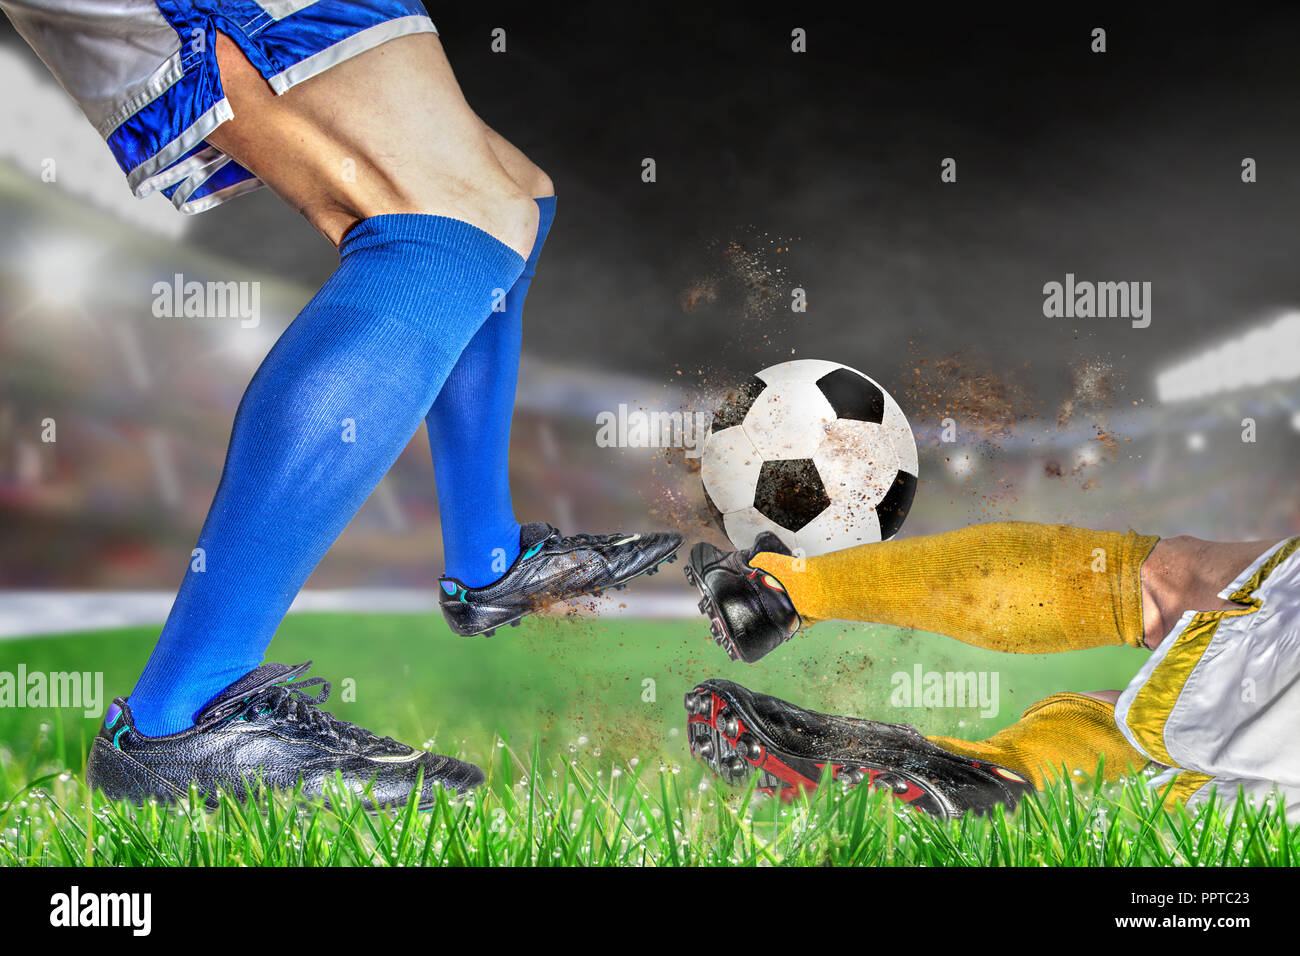 Soccer players in action with football in brightly lit outdoor stadium. Focus on foreground and soccer ball with shallow depth of field on background  - Stock Image